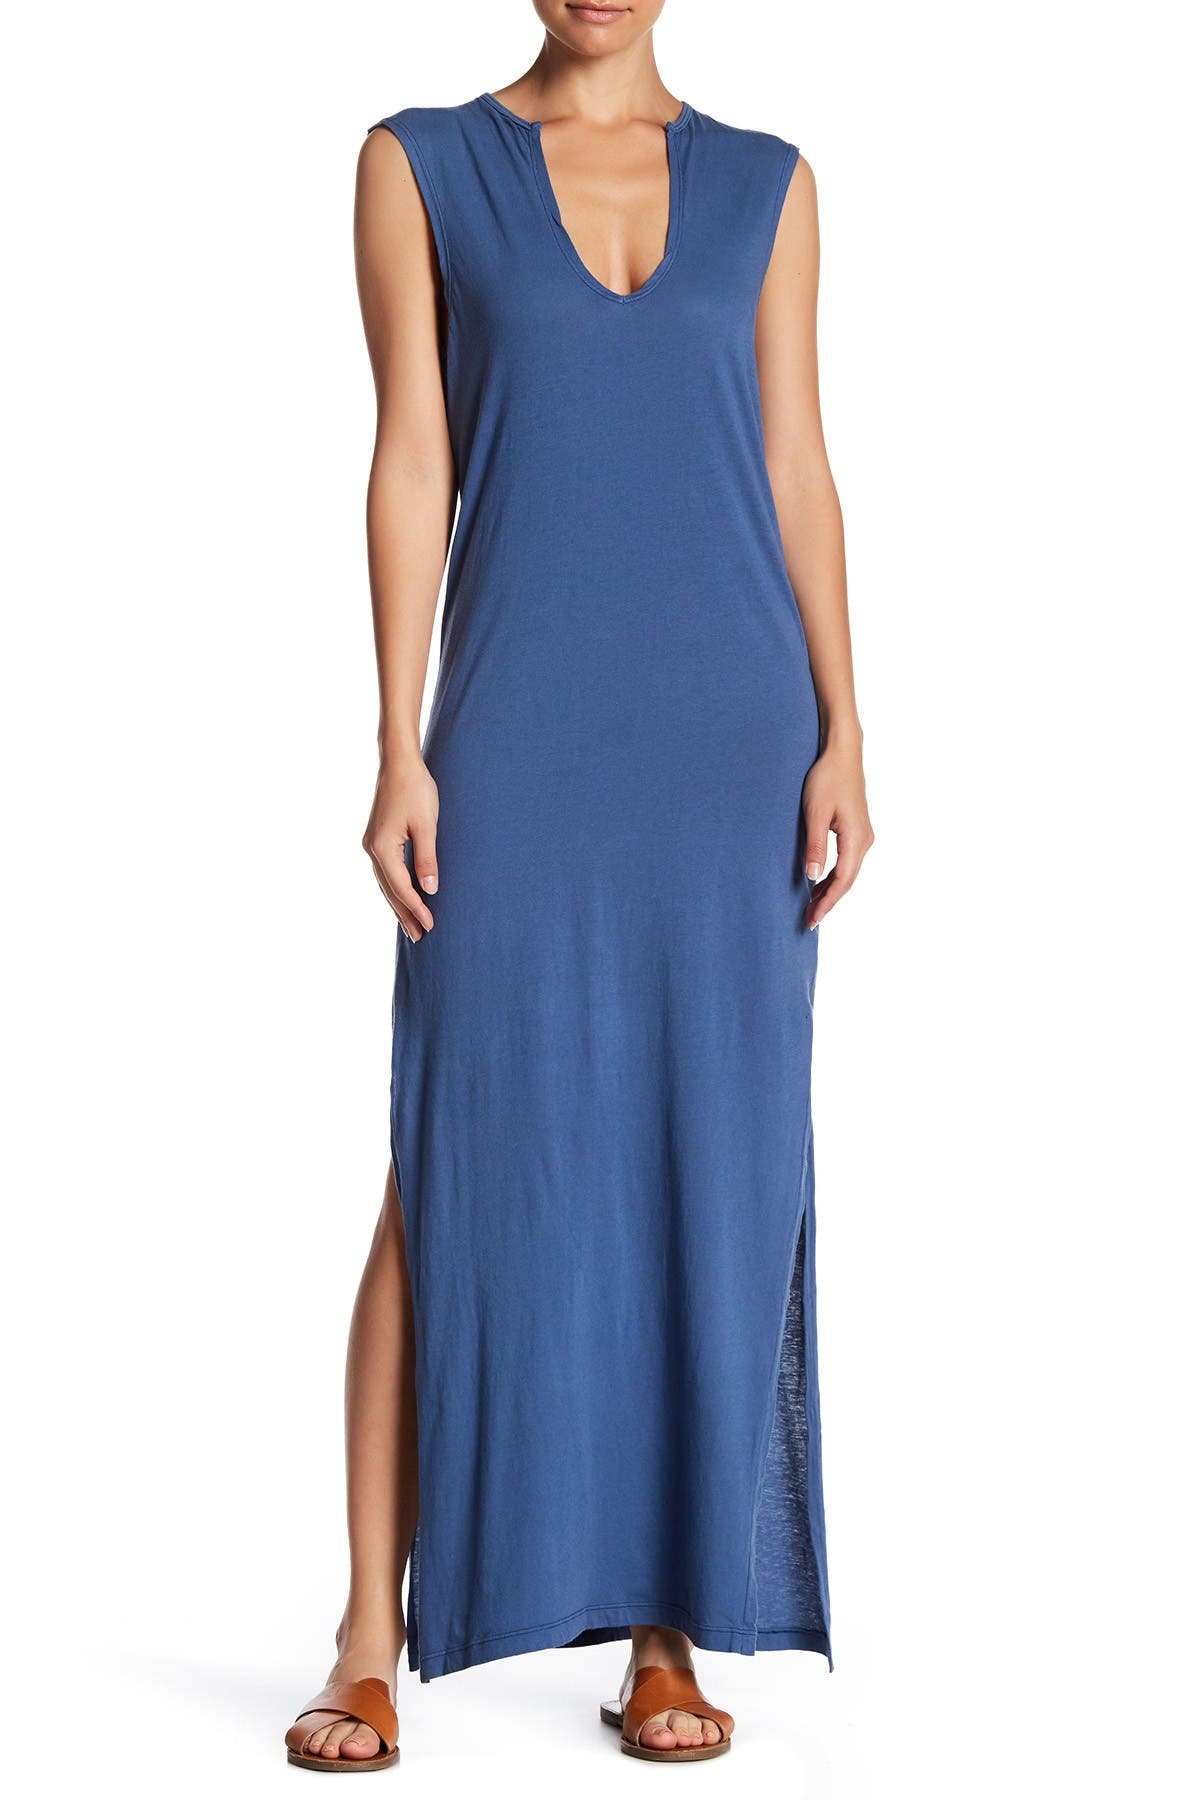 Image of C & C California Dawna Sleeveless Maxi Dress